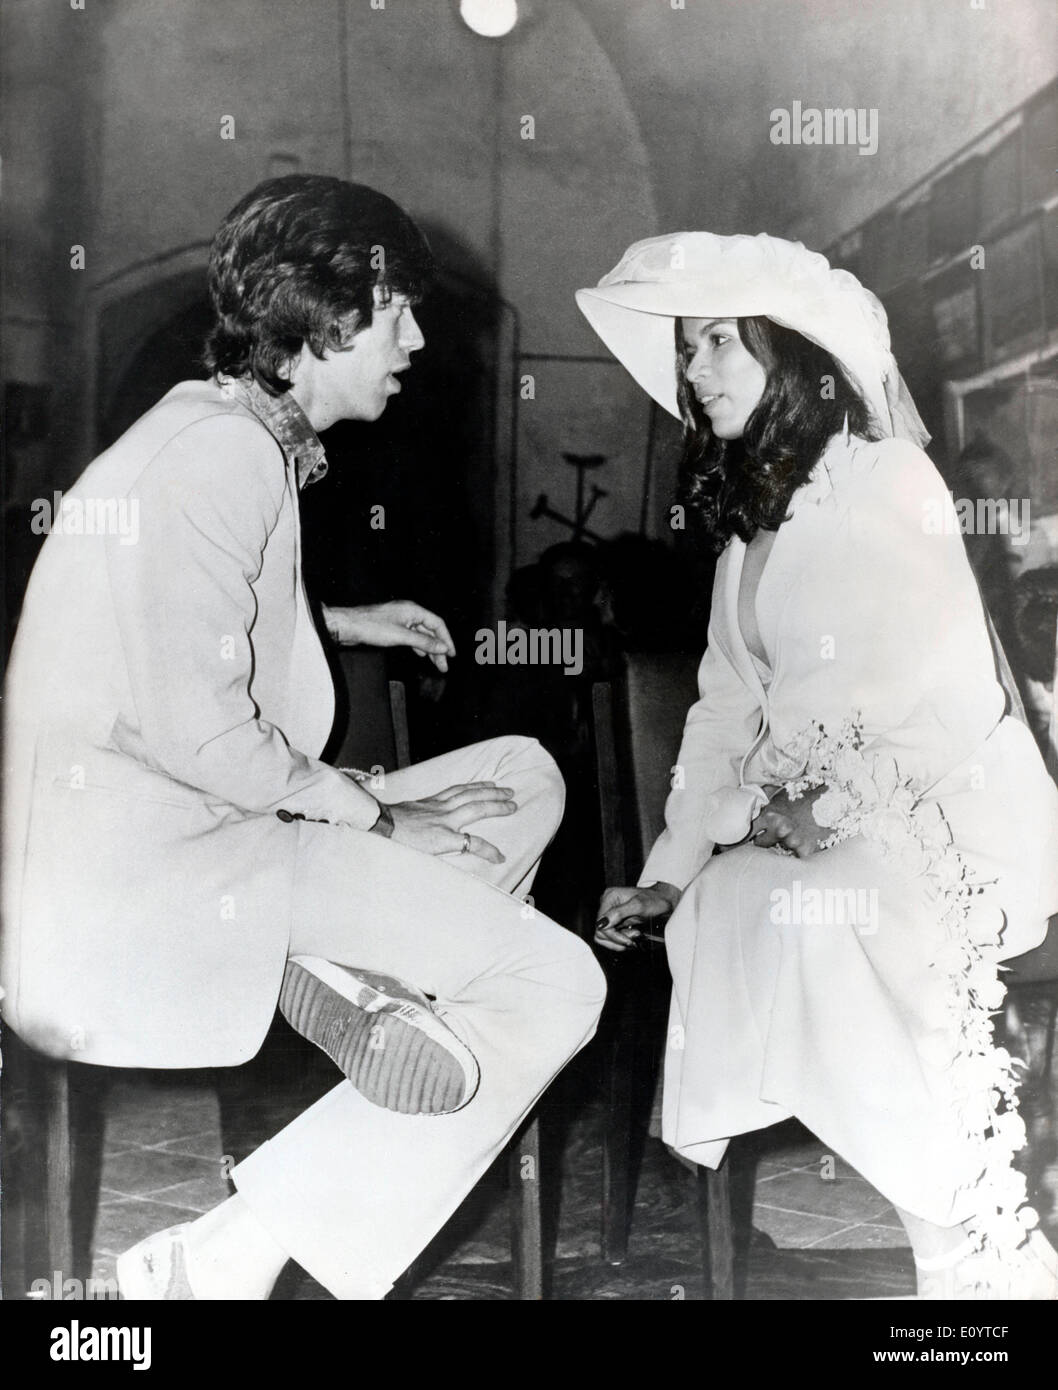 Singer Mick Jagger marries Bianca Jagger - Stock Image